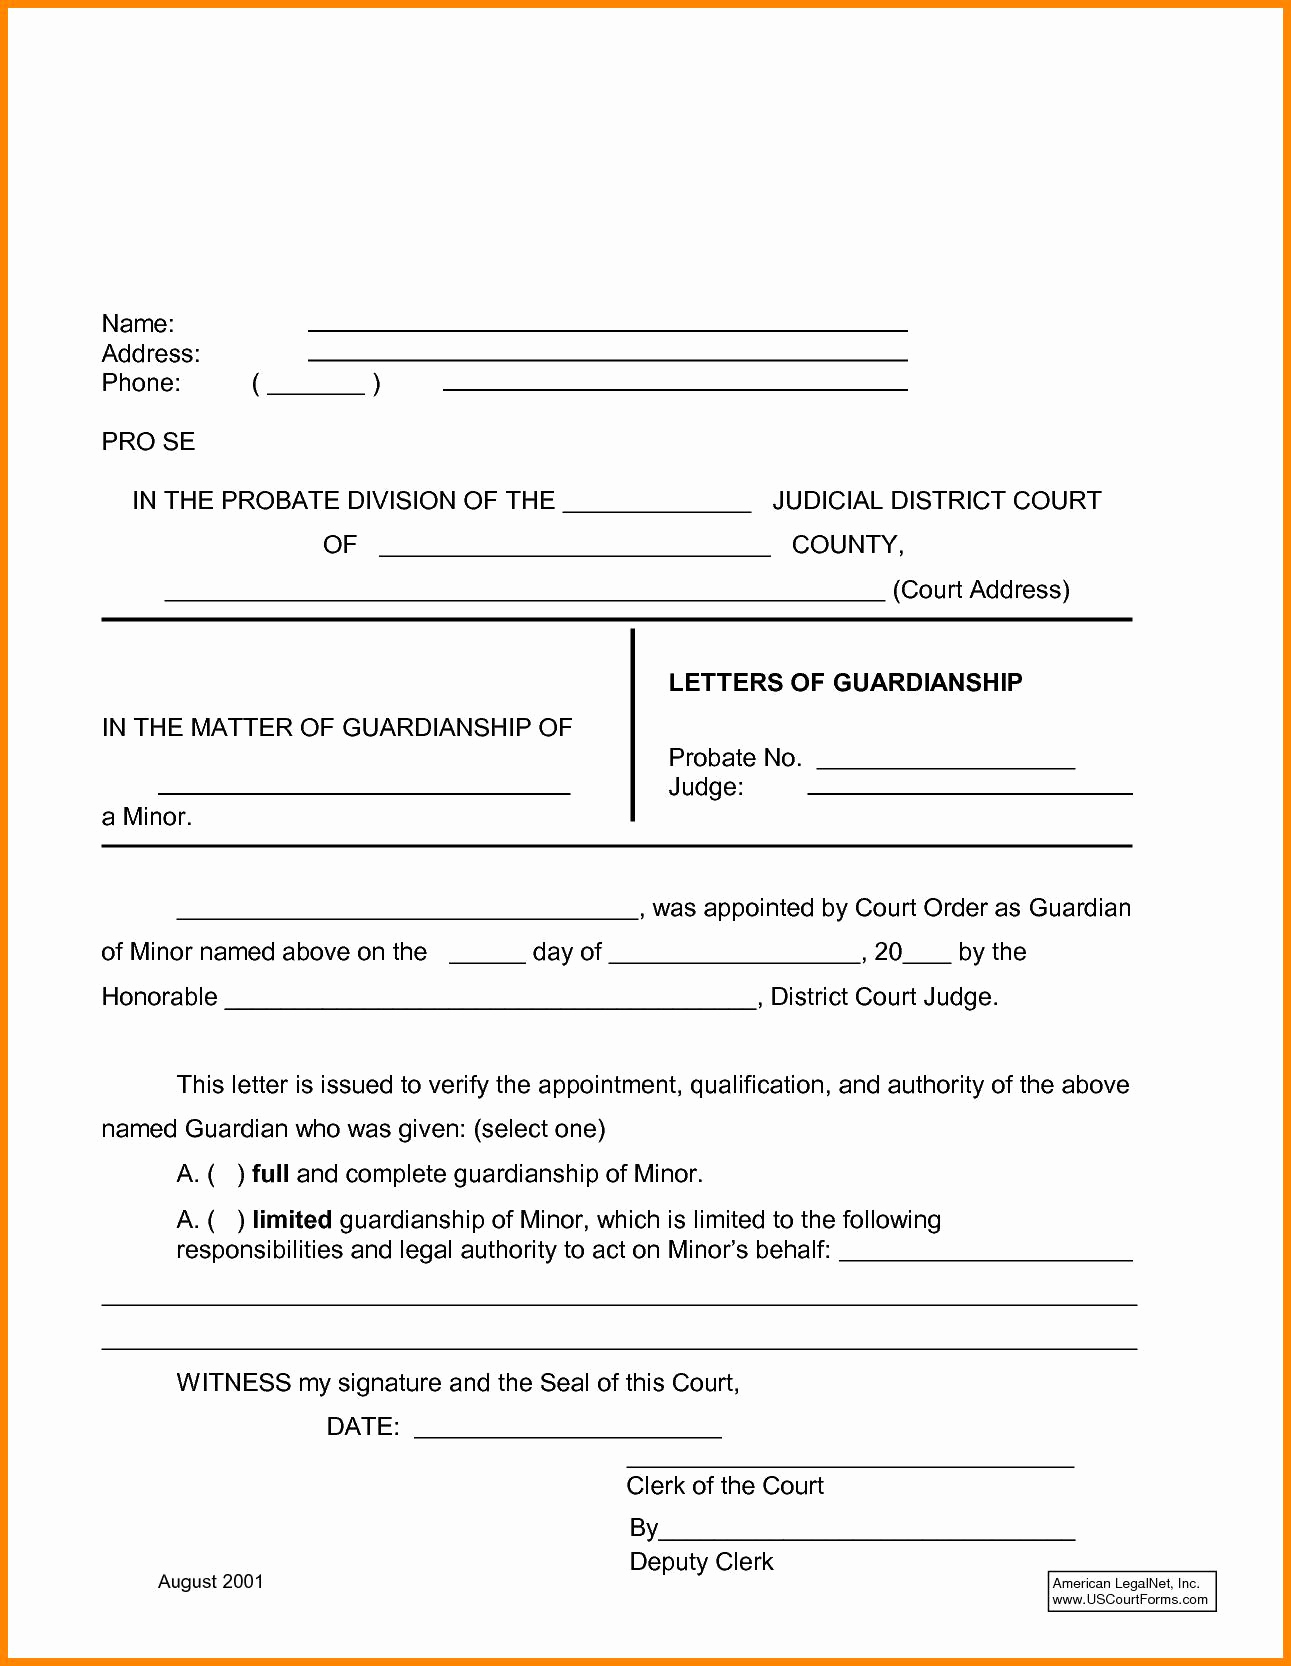 temporary custody letter template example-Temporary Guardianship Agreement form Temporary Custody Letter Template Elegant Child Custody Agreement 6-p